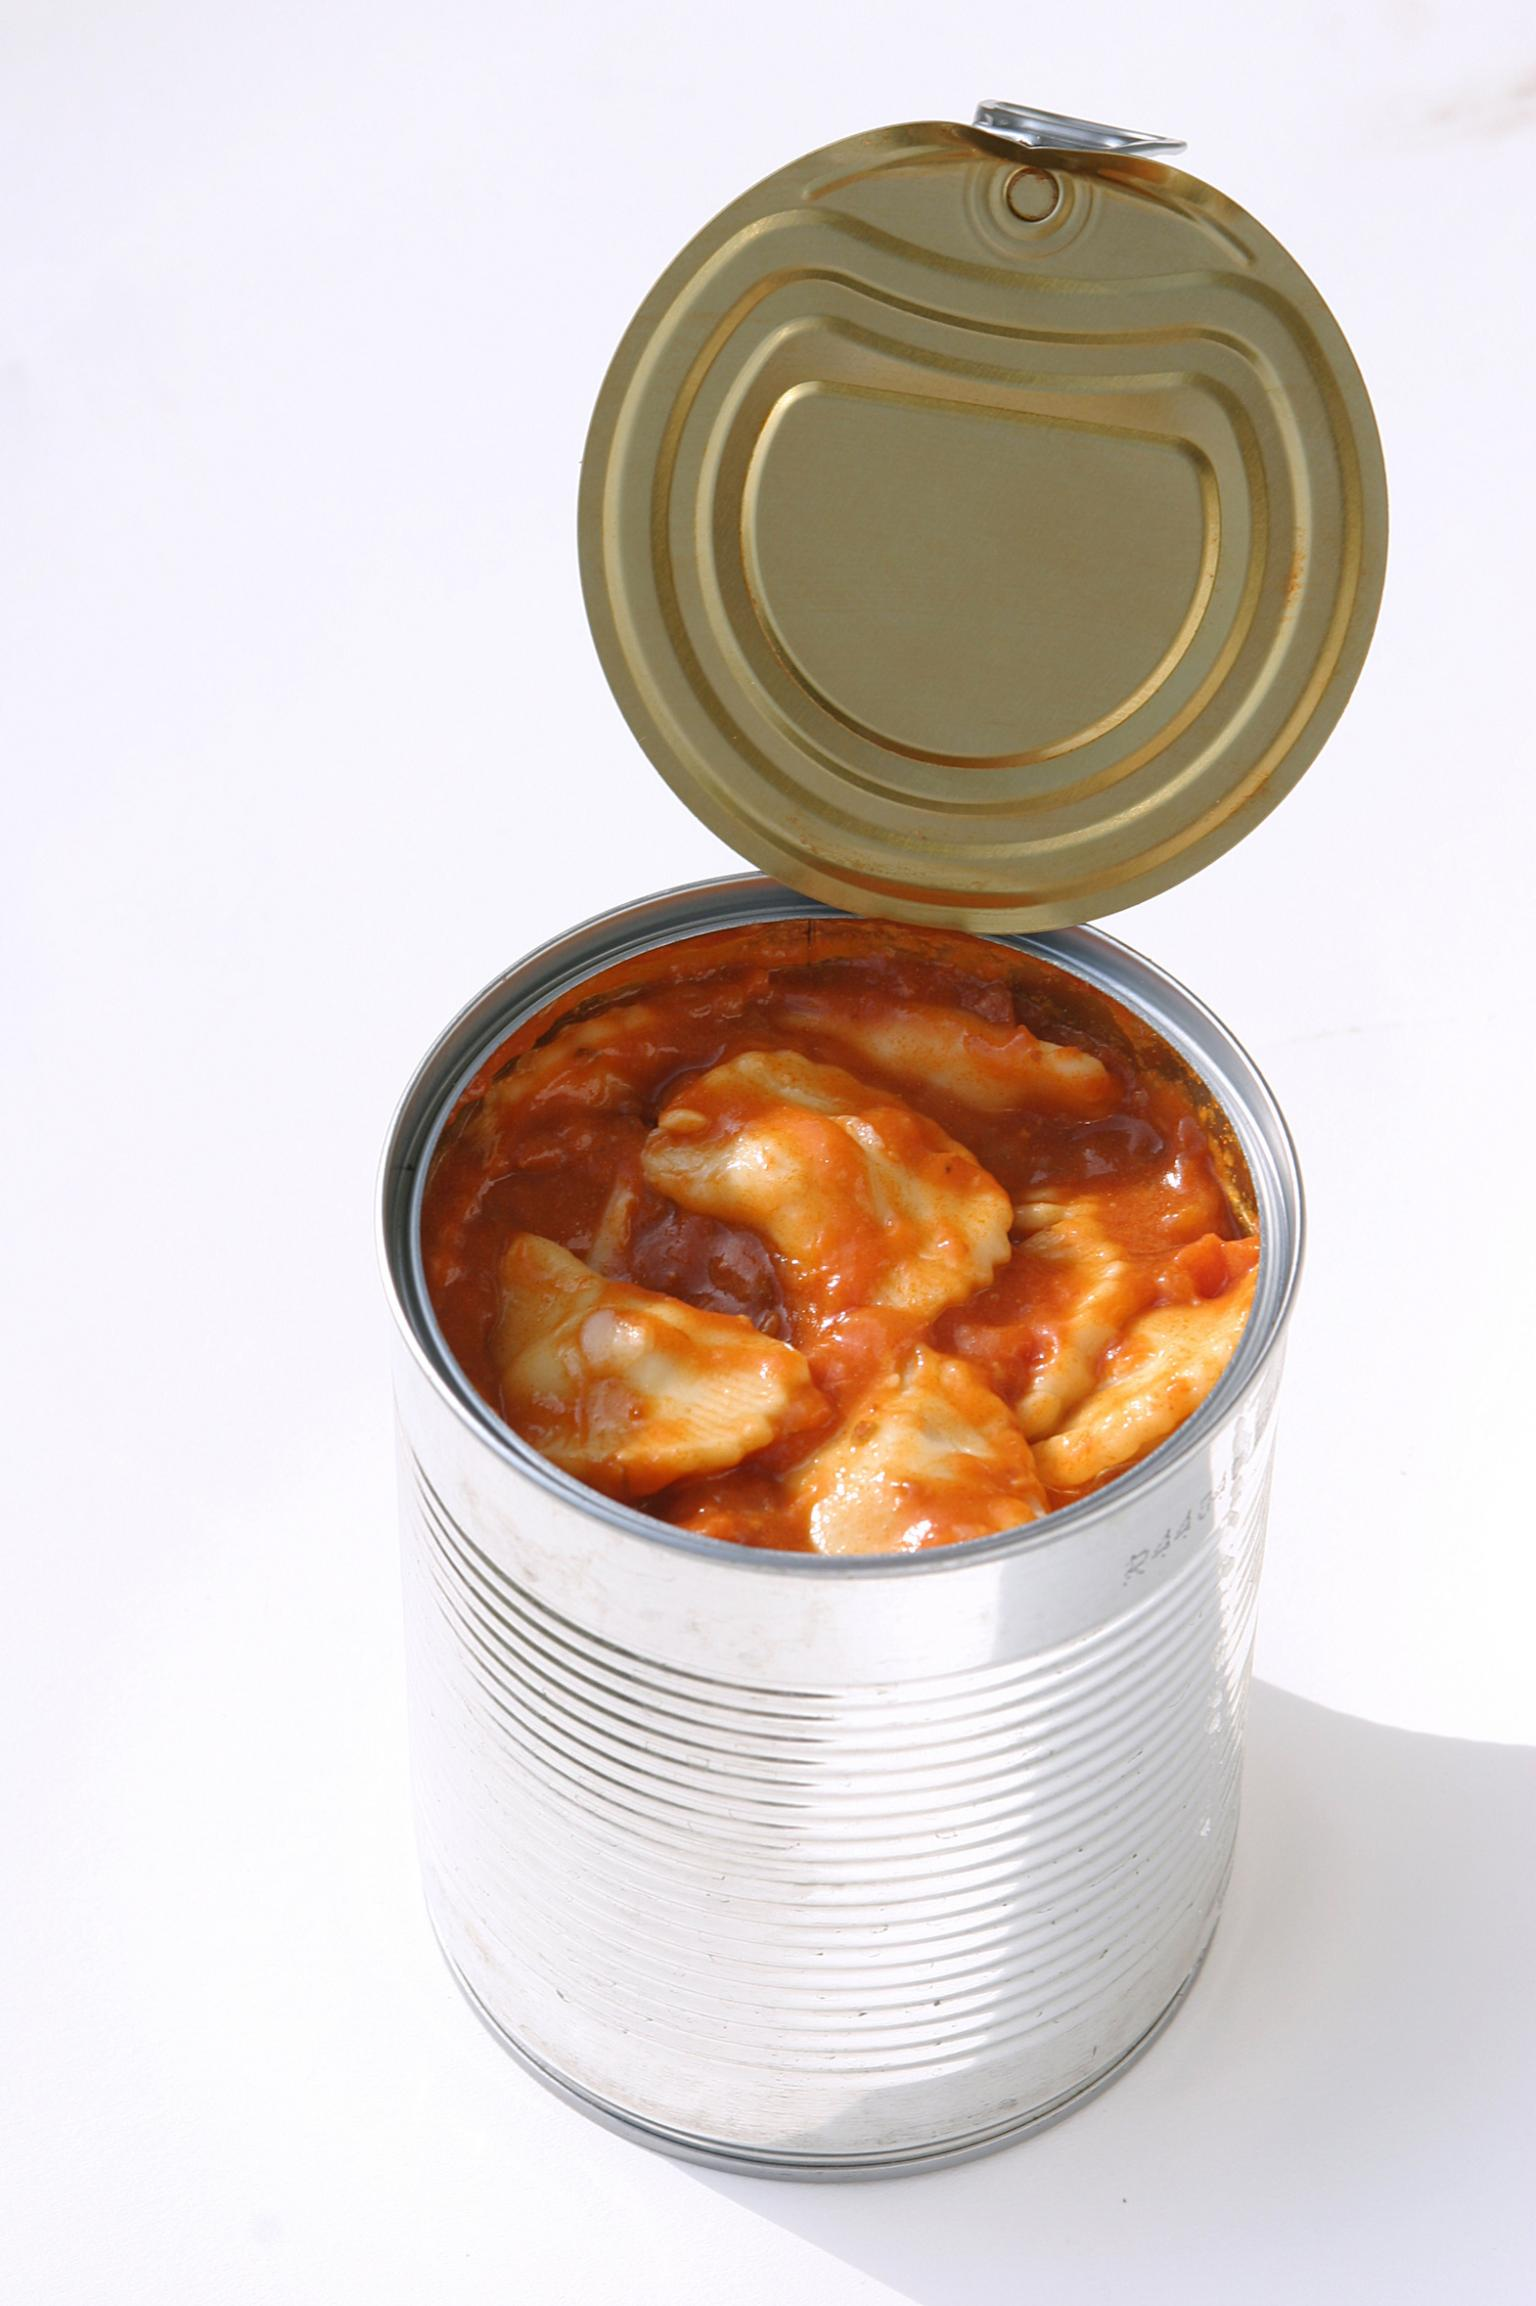 Products equipped with a transponder can still provide important information about their condition when they are in the hands of the end customer, whether they are a hydraulic hose or a can of ravioli. Photo credit: FOOD-micro – Fotolia